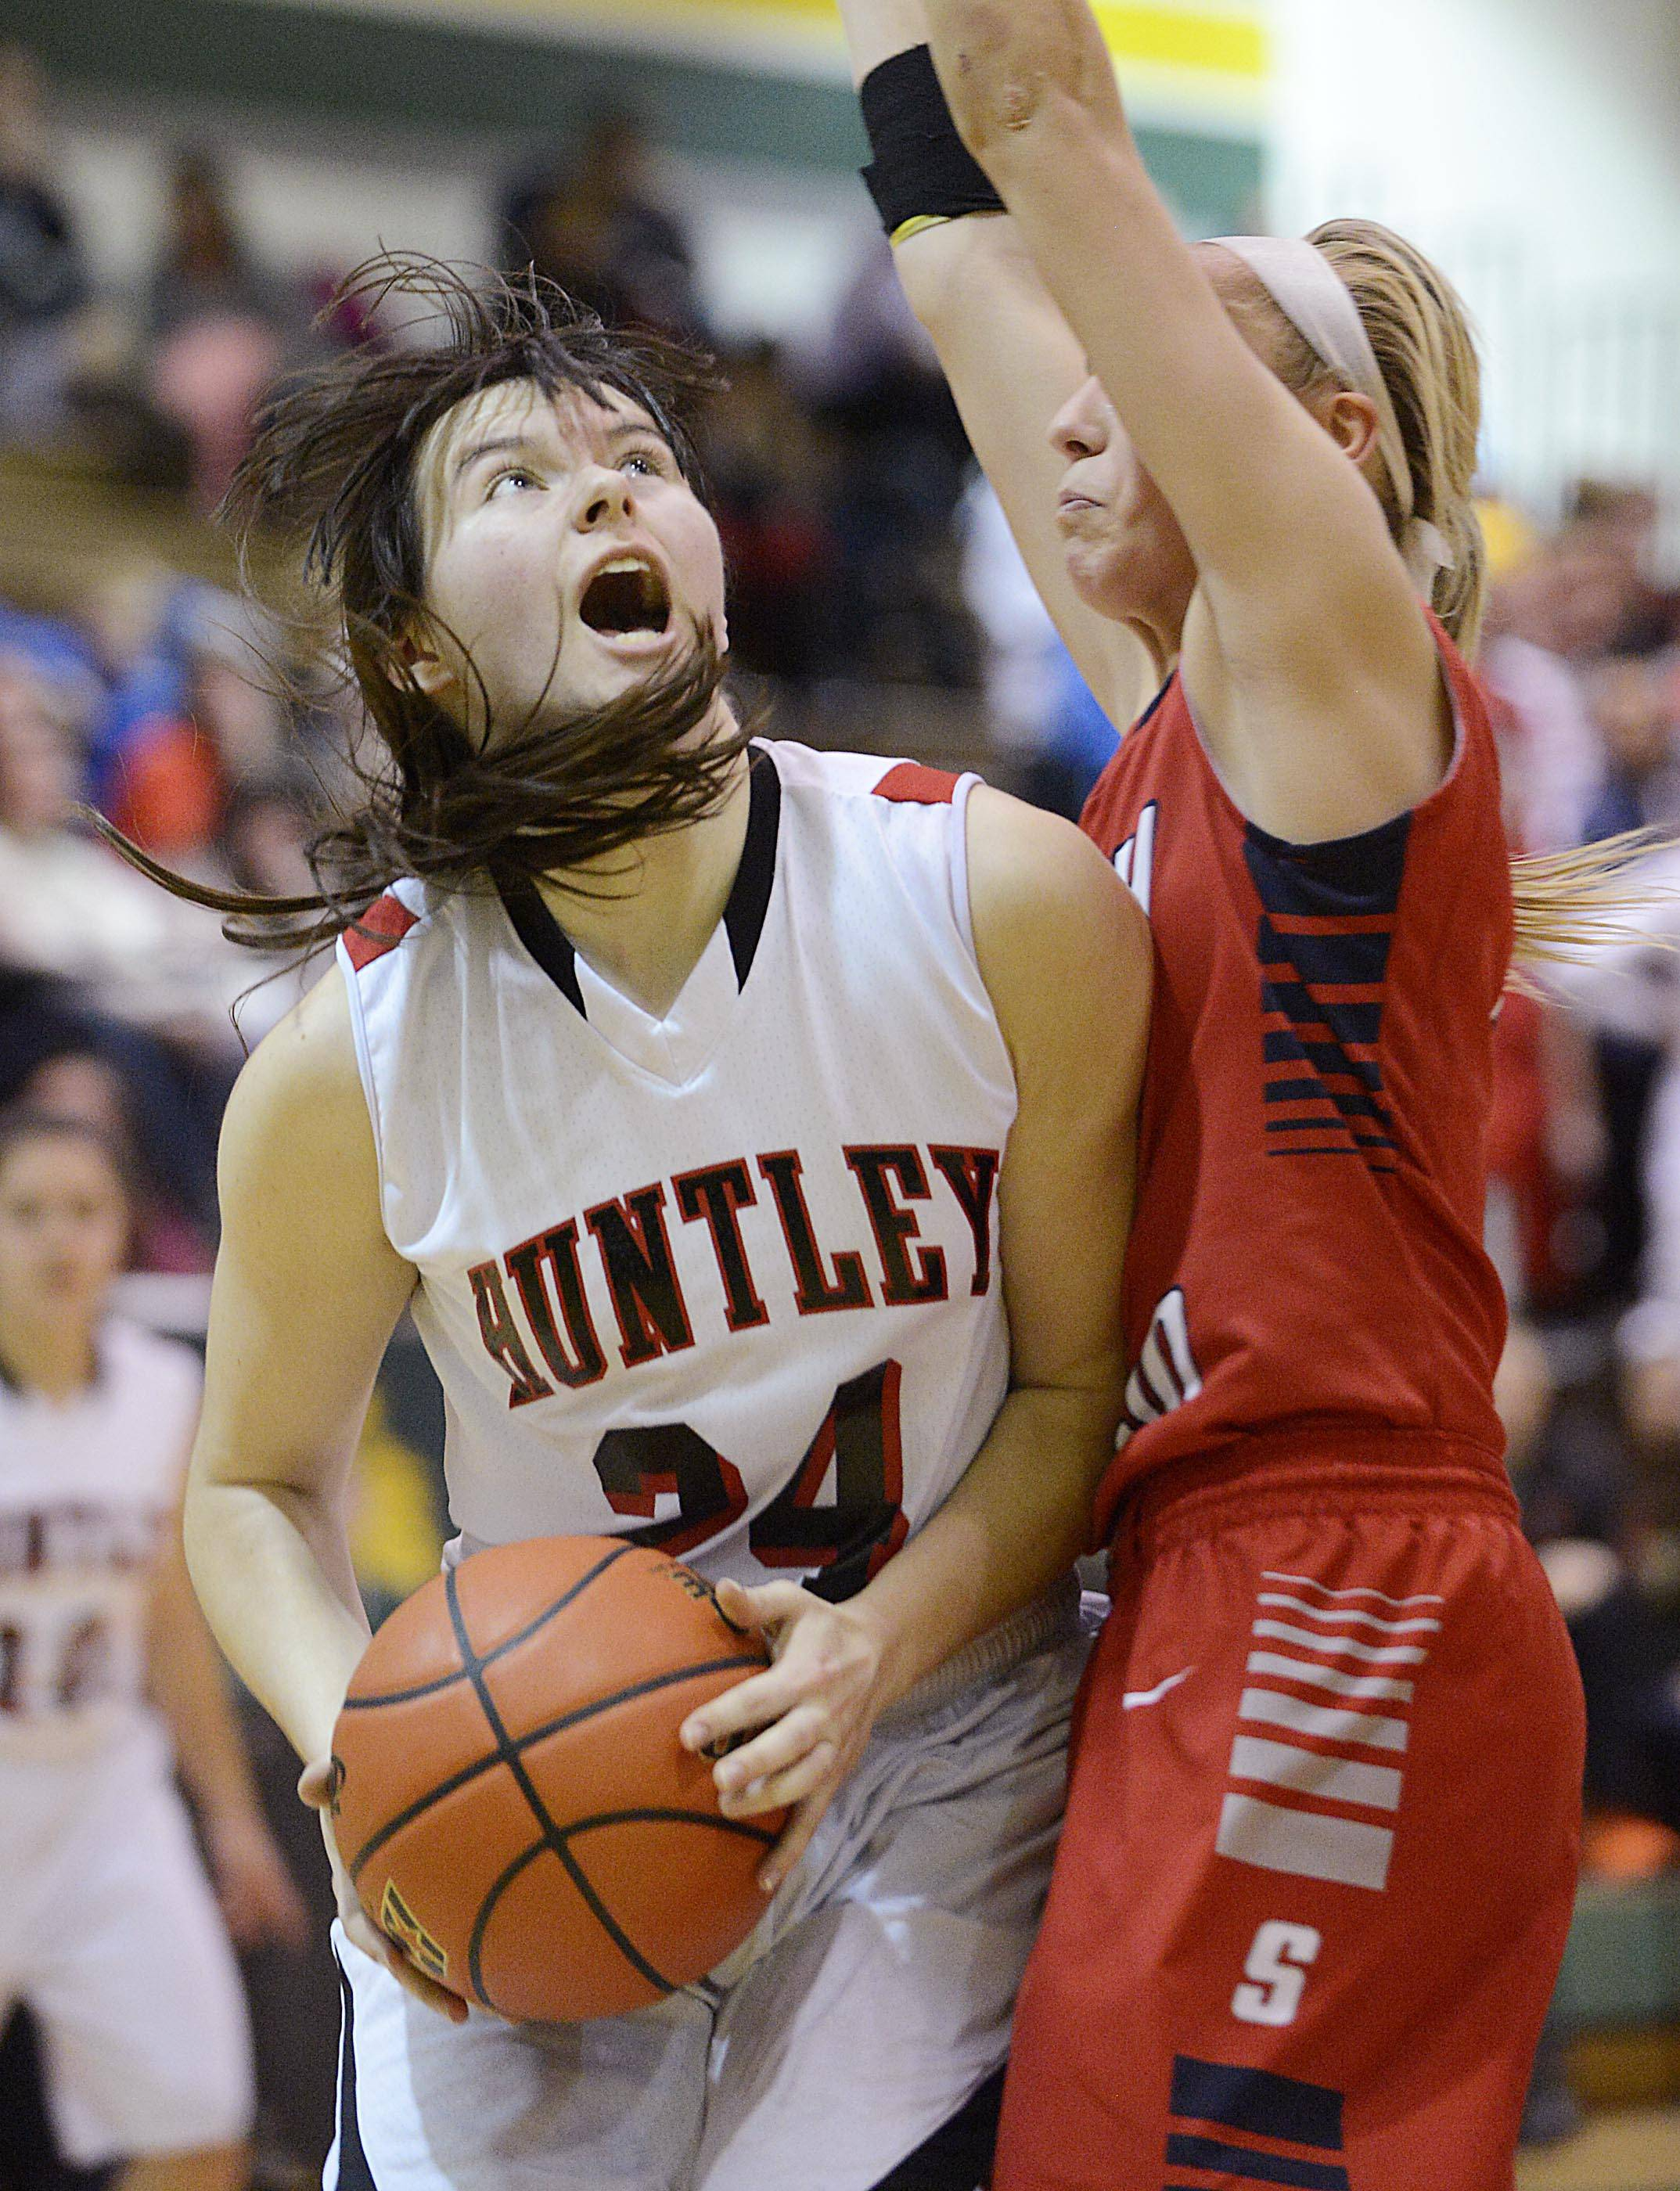 Huntley's Bethany Zornow looks for the basket as South Elgin's Savanah Uveges defends in the Class 4A Crystal Lake South sectional game Tuesday.